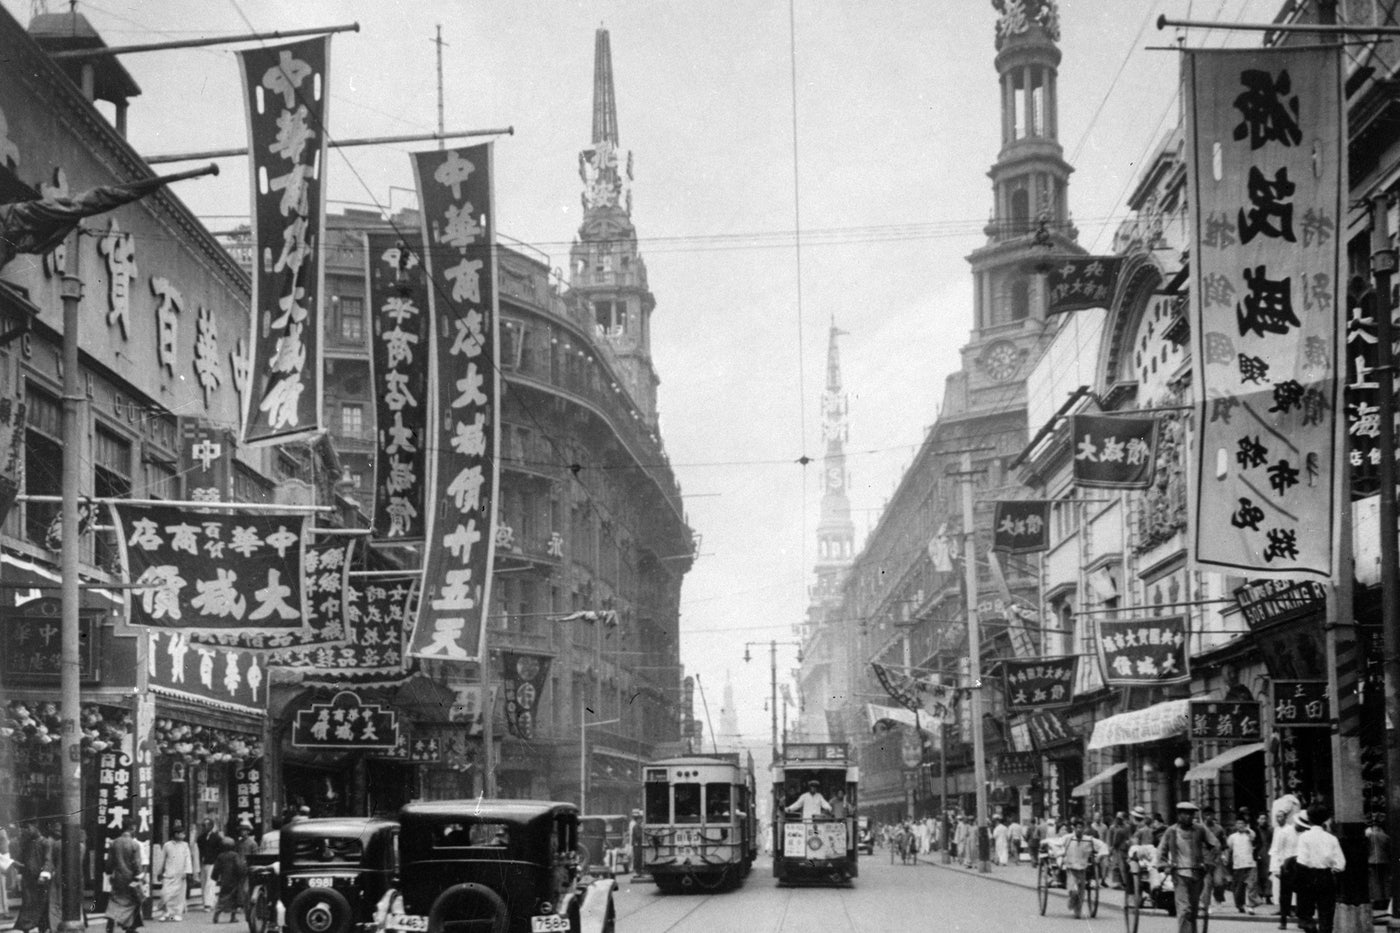 Nanking Road in downtown Shanghai in the 1930s.